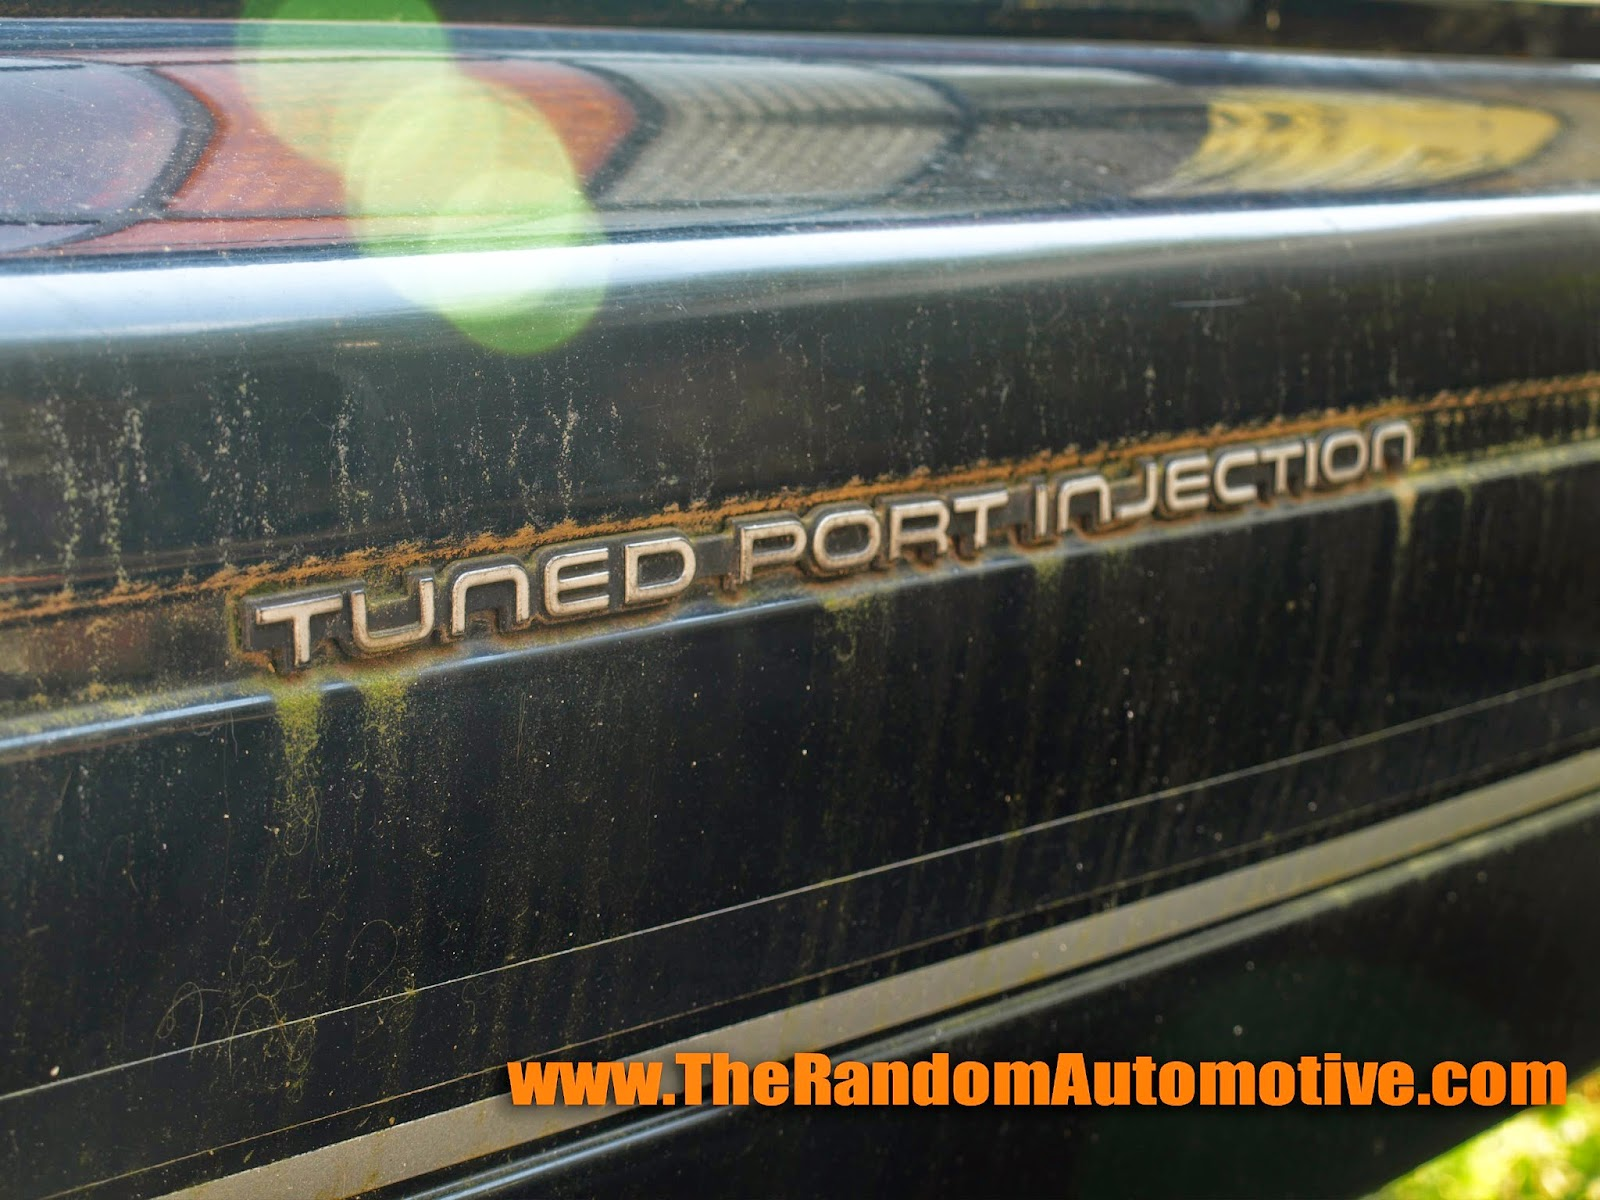 1985 camaro iroc-z chevy rotting in style american muscle db productions dylan benson random auto